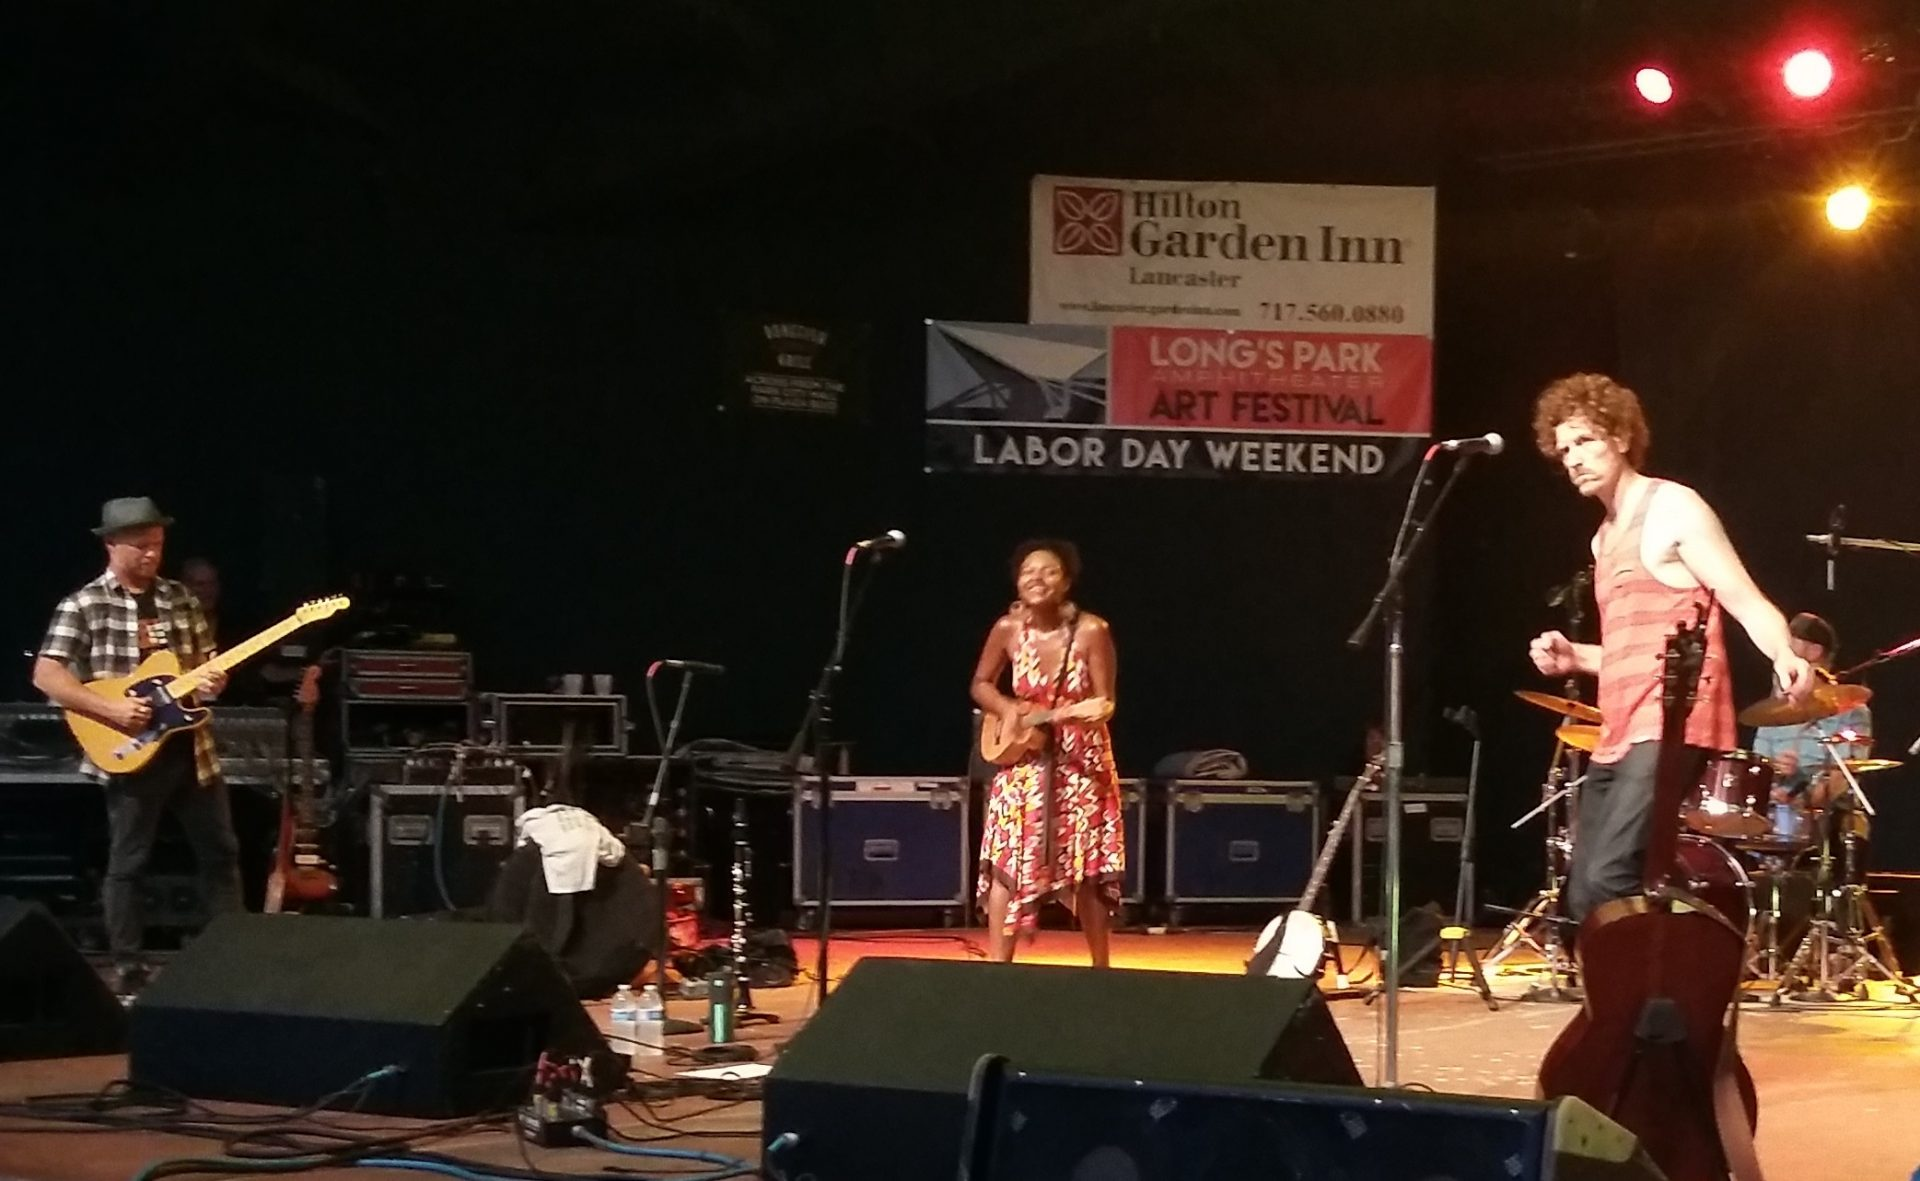 The band Birds of Chicago performs at the Long's Park Amhitheater on Sunday, July 15, 2018.